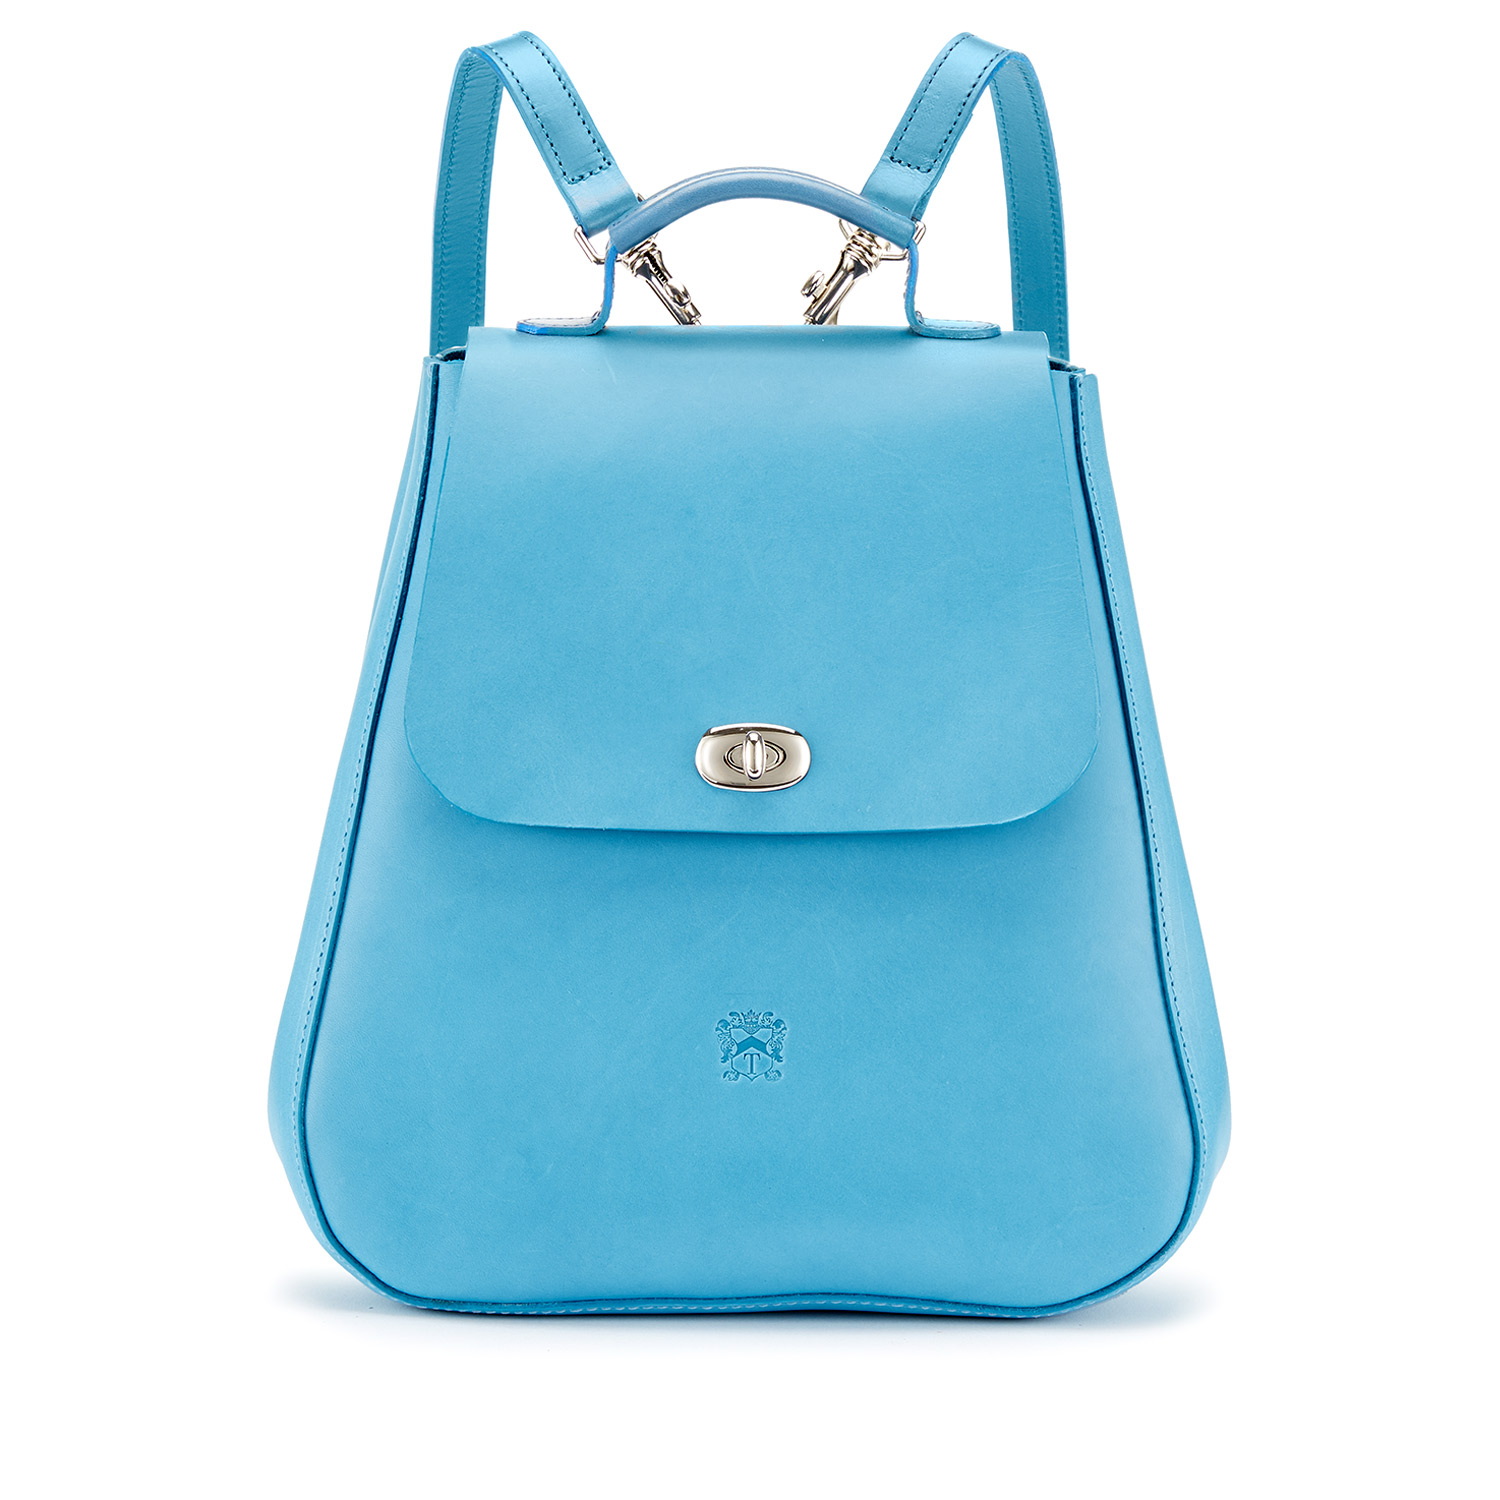 Tusting pale blue leather backpack rucksack, the Eliza